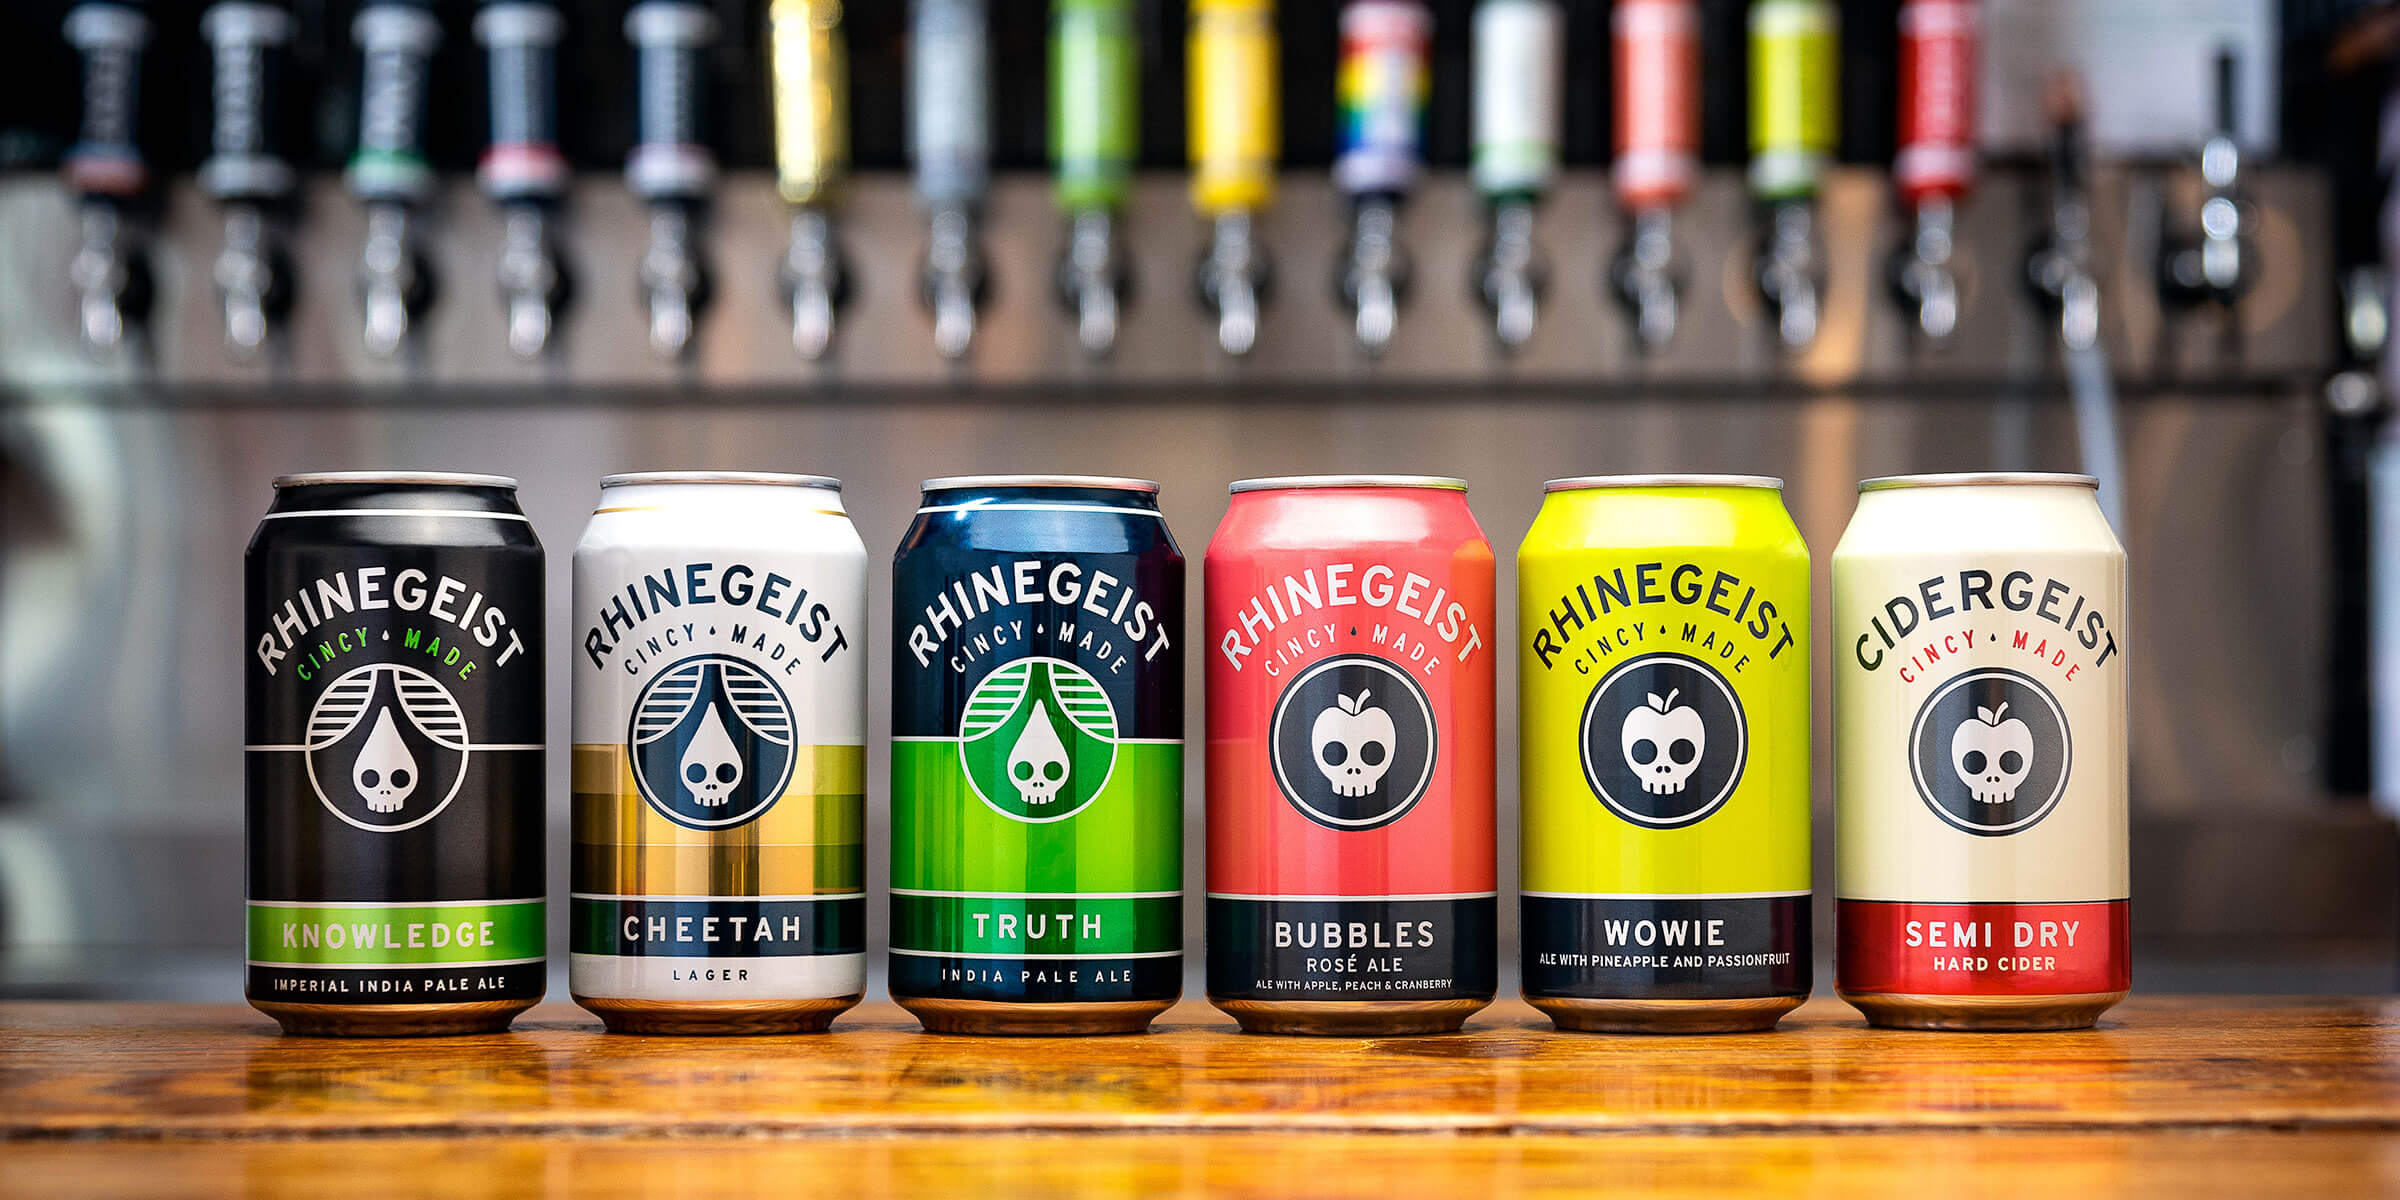 A lineup of canned beers by Rhinegeist Brewery